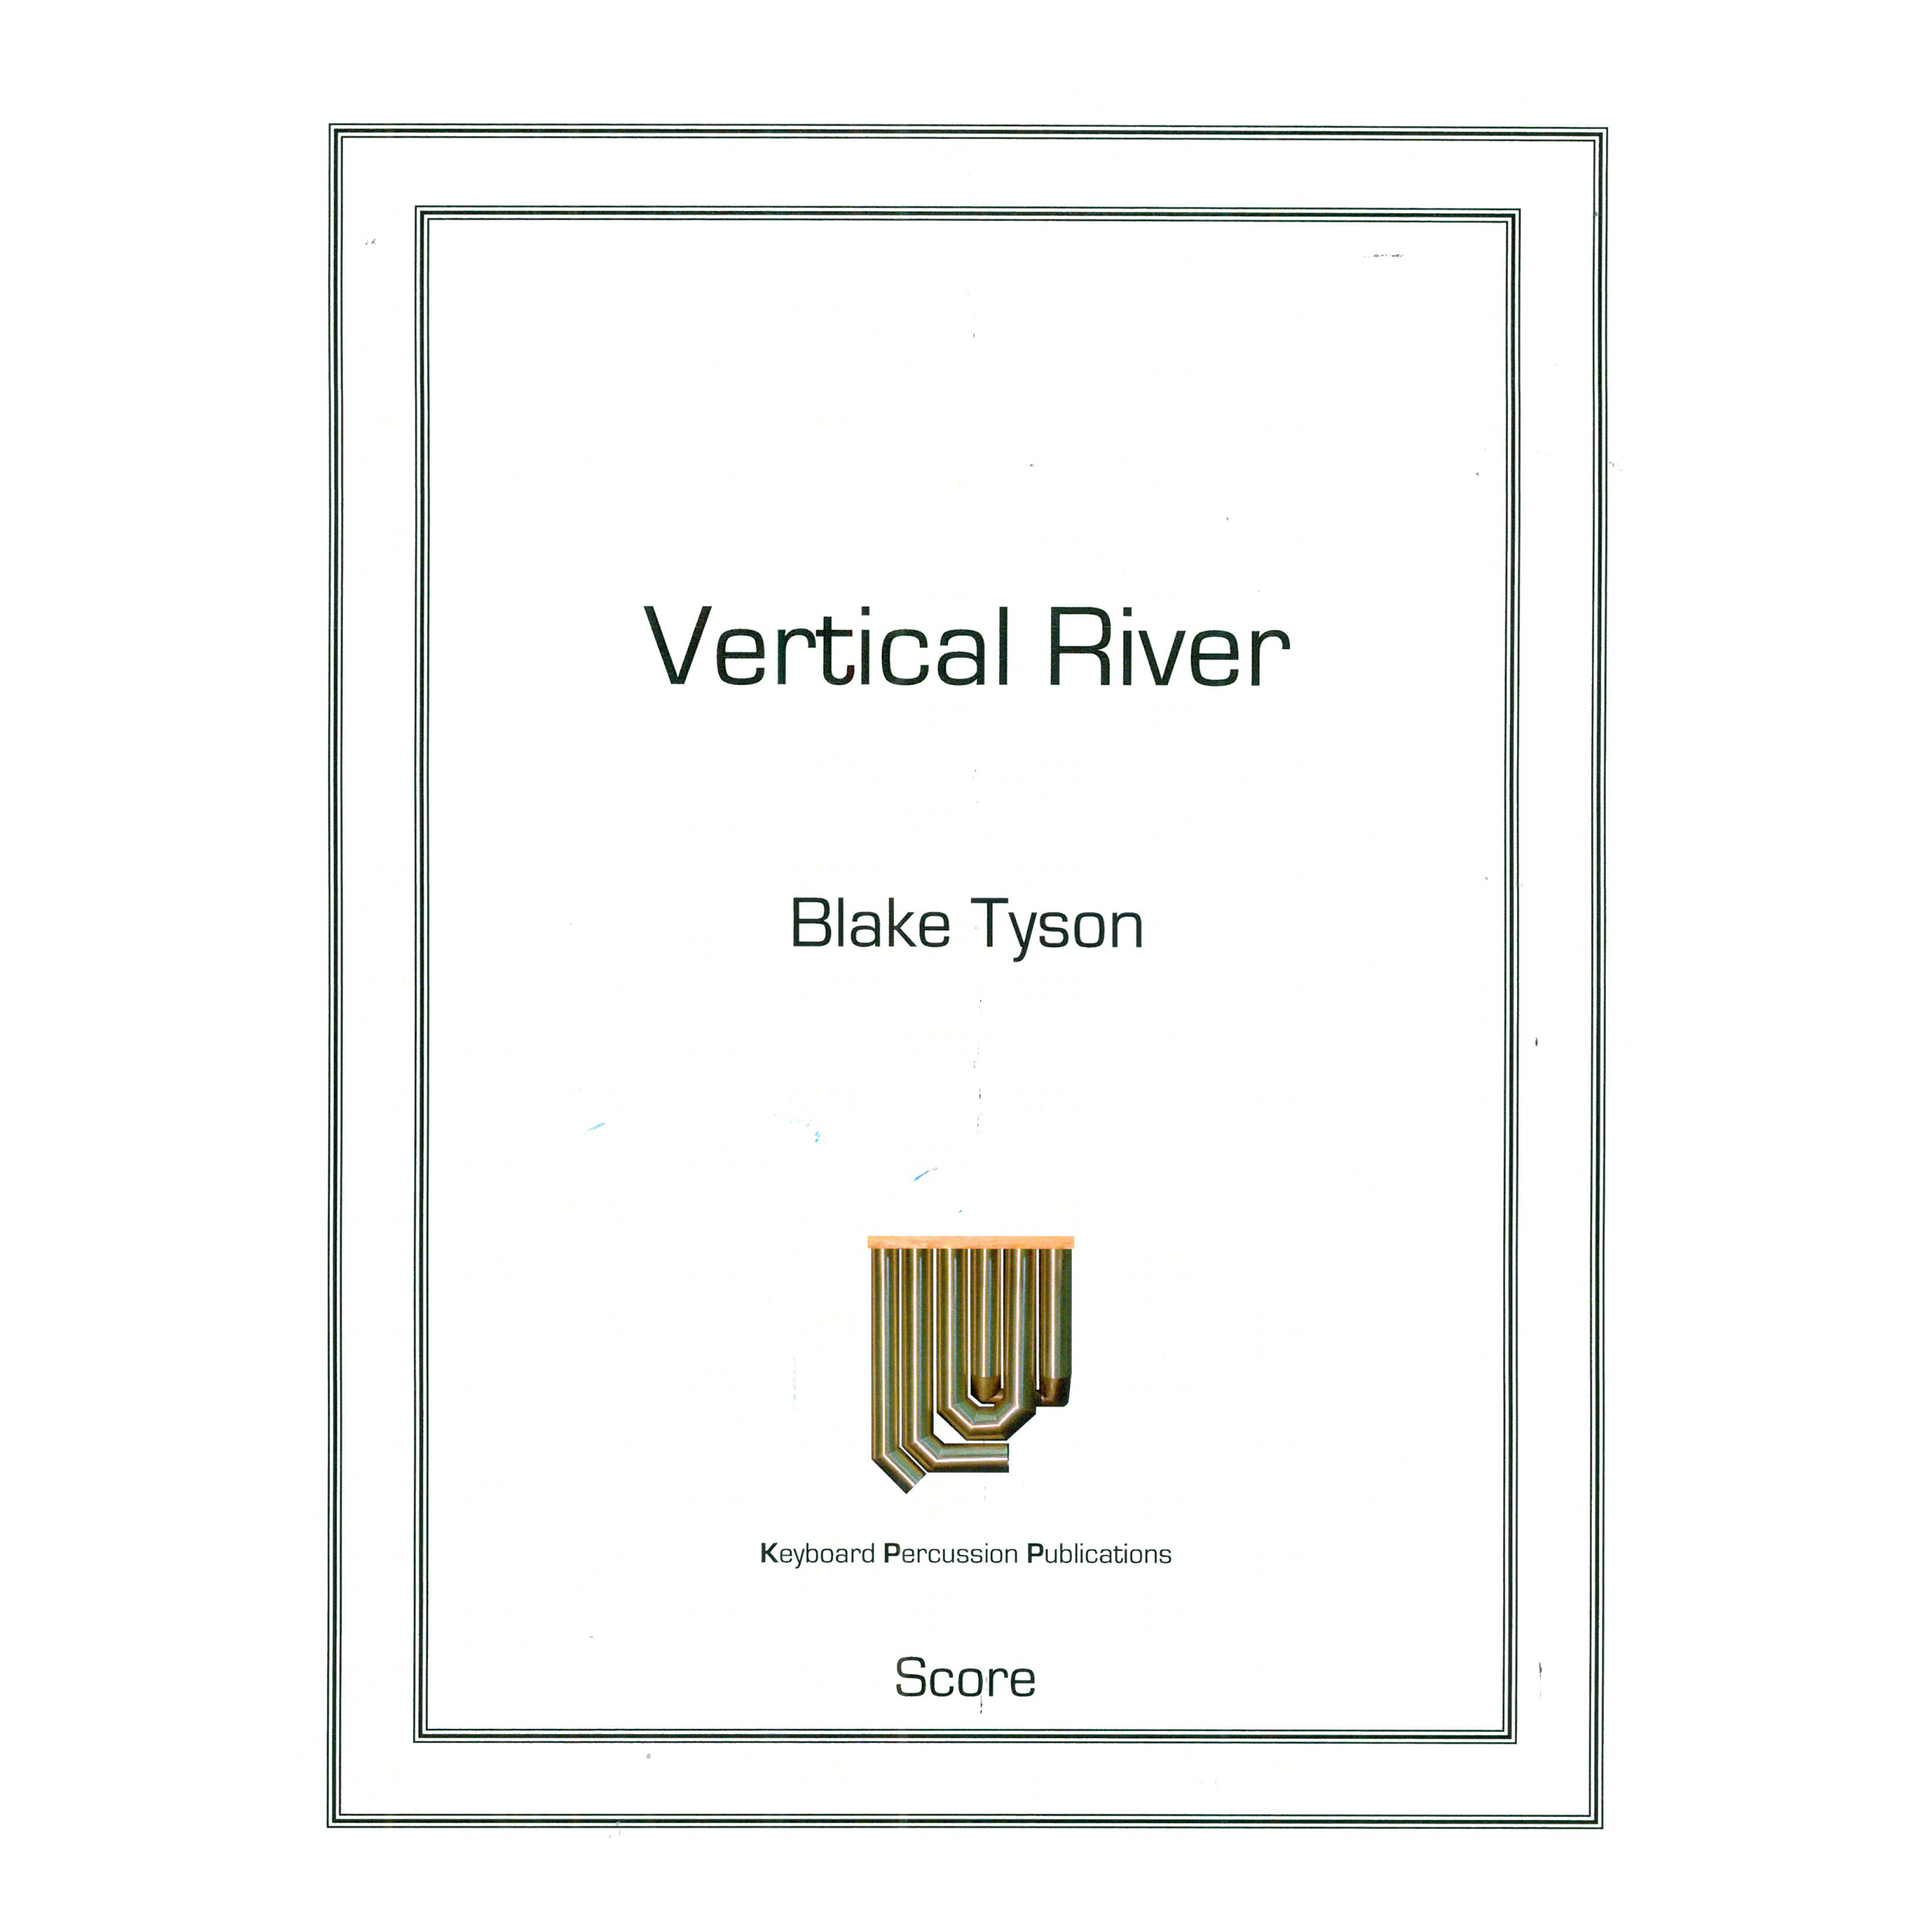 Vertical River by Blake Tyson